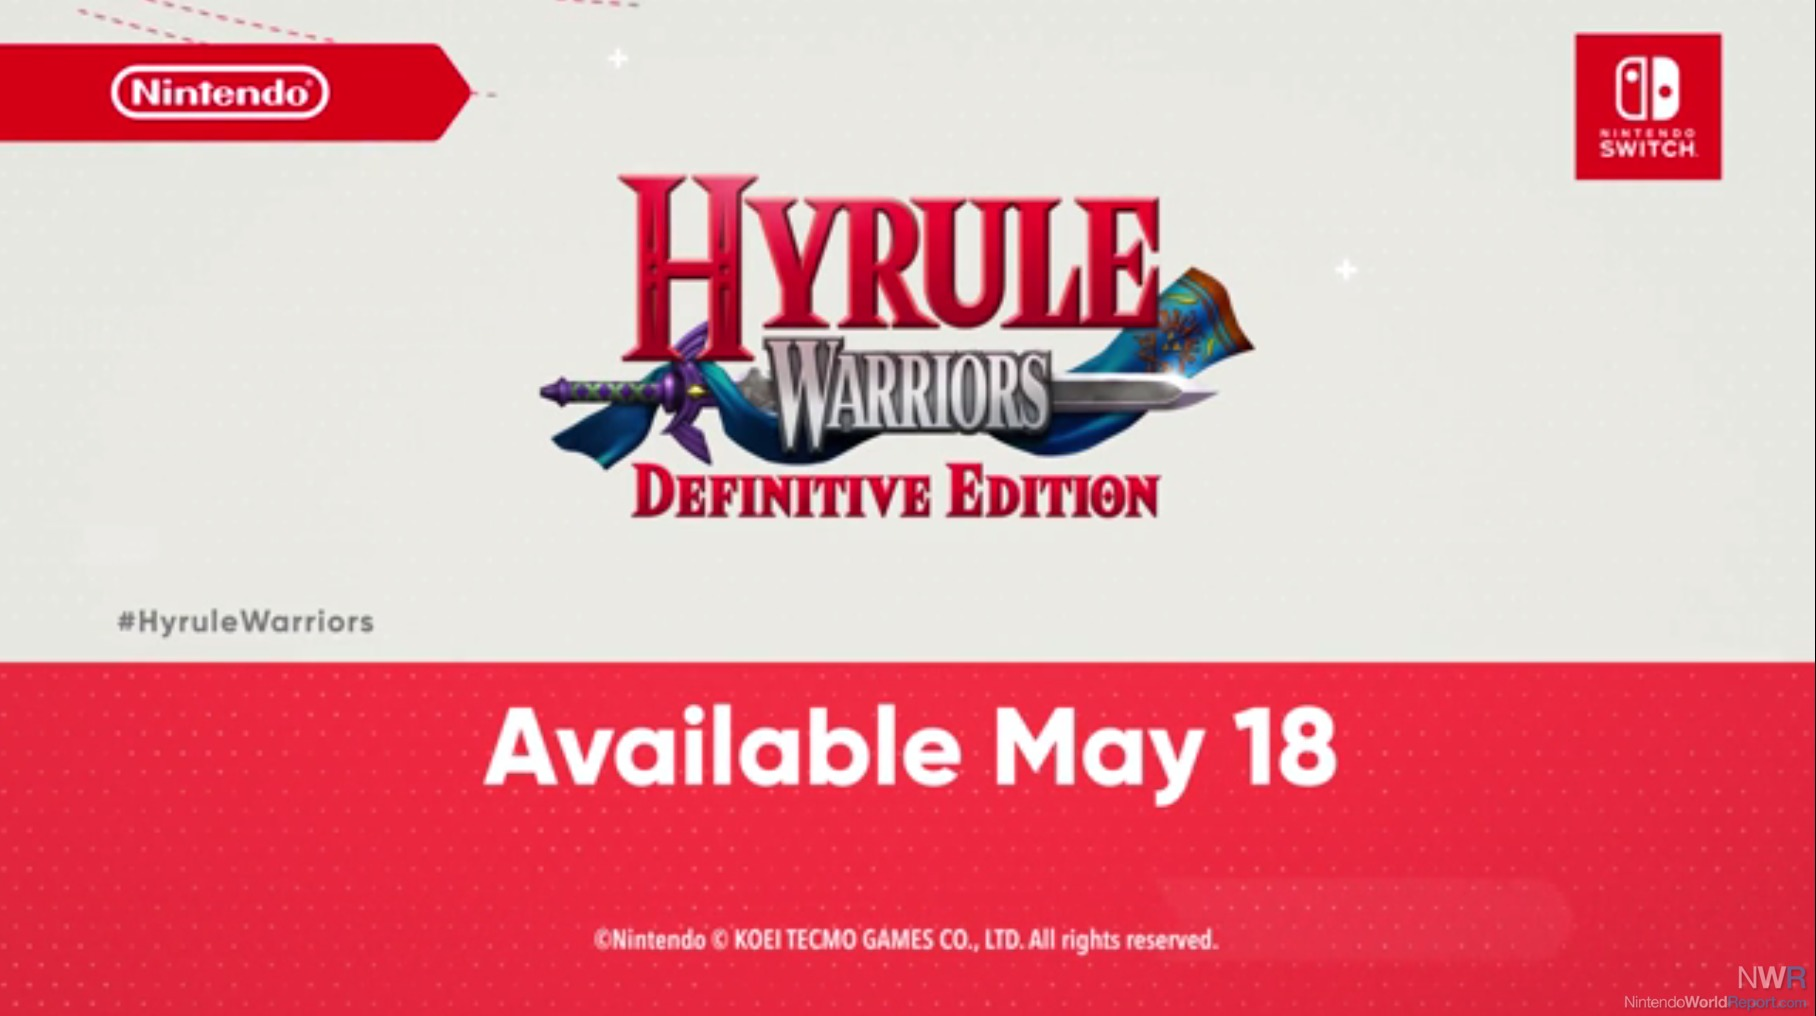 Hyrule Warriors: Definite Edition to release for Nintendo Switch on May 18th